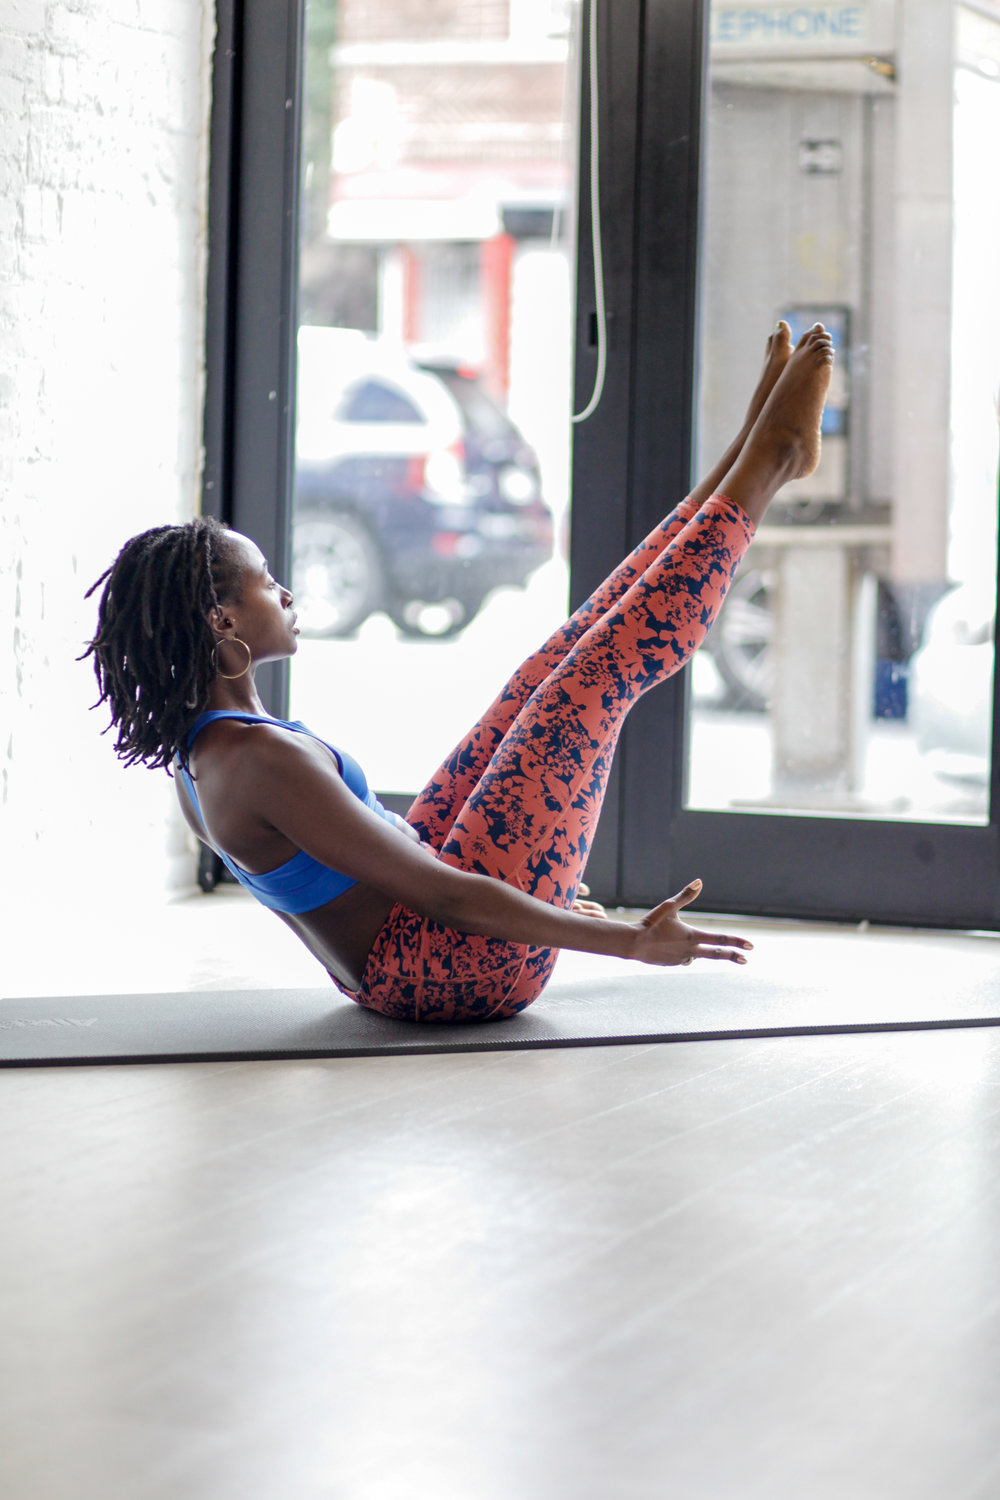 Pilates is for every body. - Pilates is a fitness system developed in the early 20th century by Joseph Pilates. If you are looking to strengthen and stabilize your core, tone and lengthen muscles, improve and maintain good posture, then Pilates is for you! It is low impact and can vary in intensity to support those rehabilitating from injuries or those wanting to improve their performance and overall body awareness for other functional everyday movement or other physical activities.You can choose between privates, duets, or group classes. It is recommended that you take at least three privates before jumping into a class to ensure that you understand the foundation of the system.*Pre and postal private and semi-private sessions are available.Pilates can help anyone move with ease and confidence. Classes and sessions have a strong classical foundation with a contemporary feel and functional twist, so expect to work hard, but with proper form!